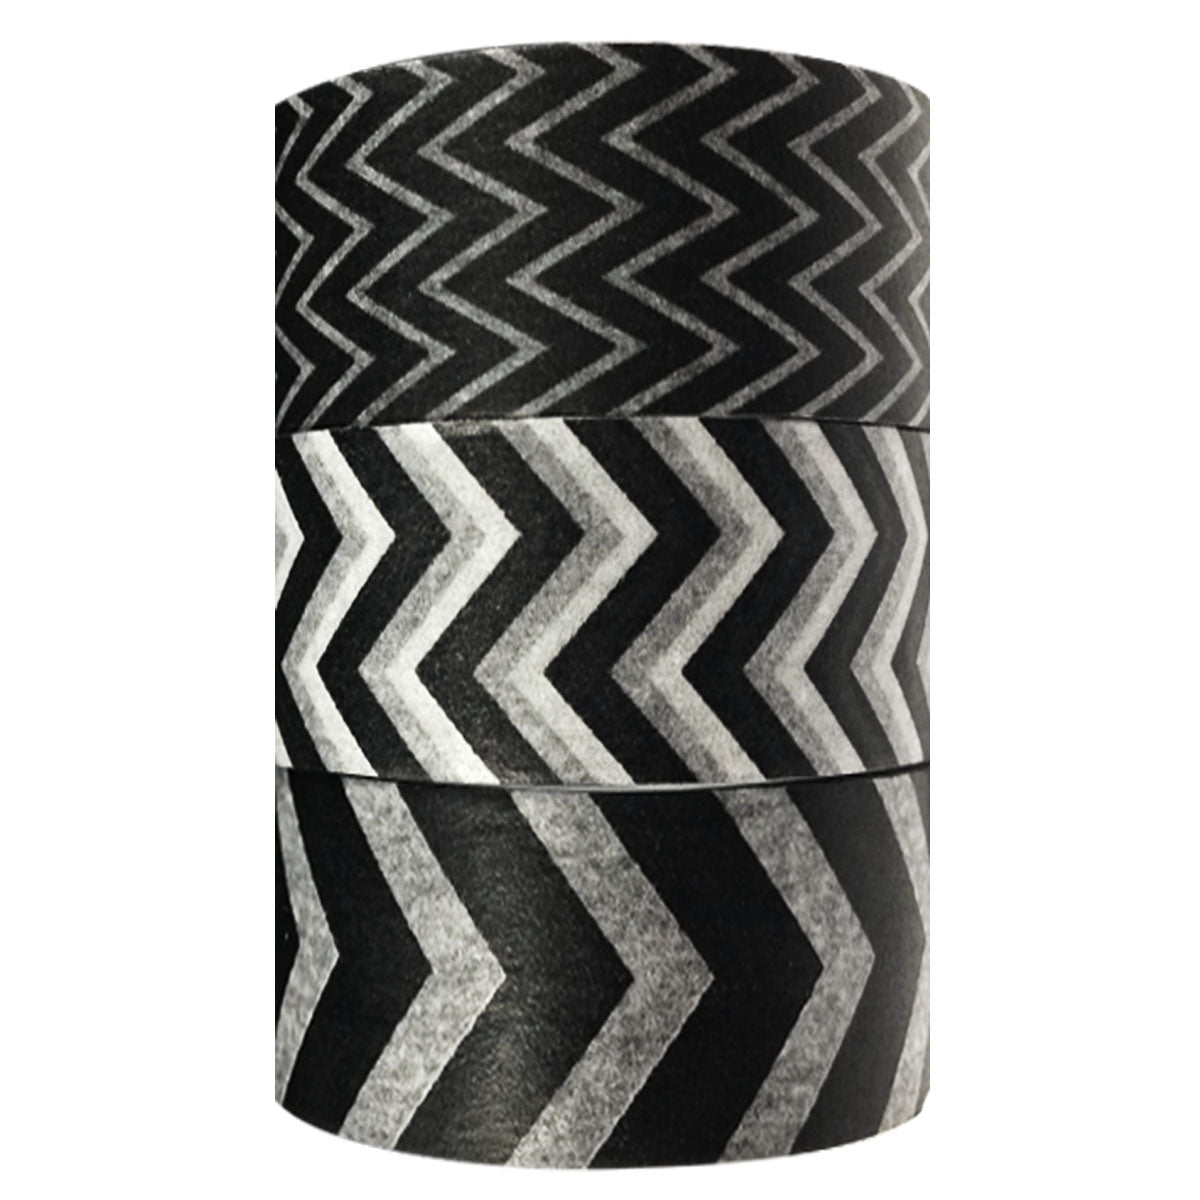 Wrapables Black and White Chevron Washi Masking Tape (set of 3)